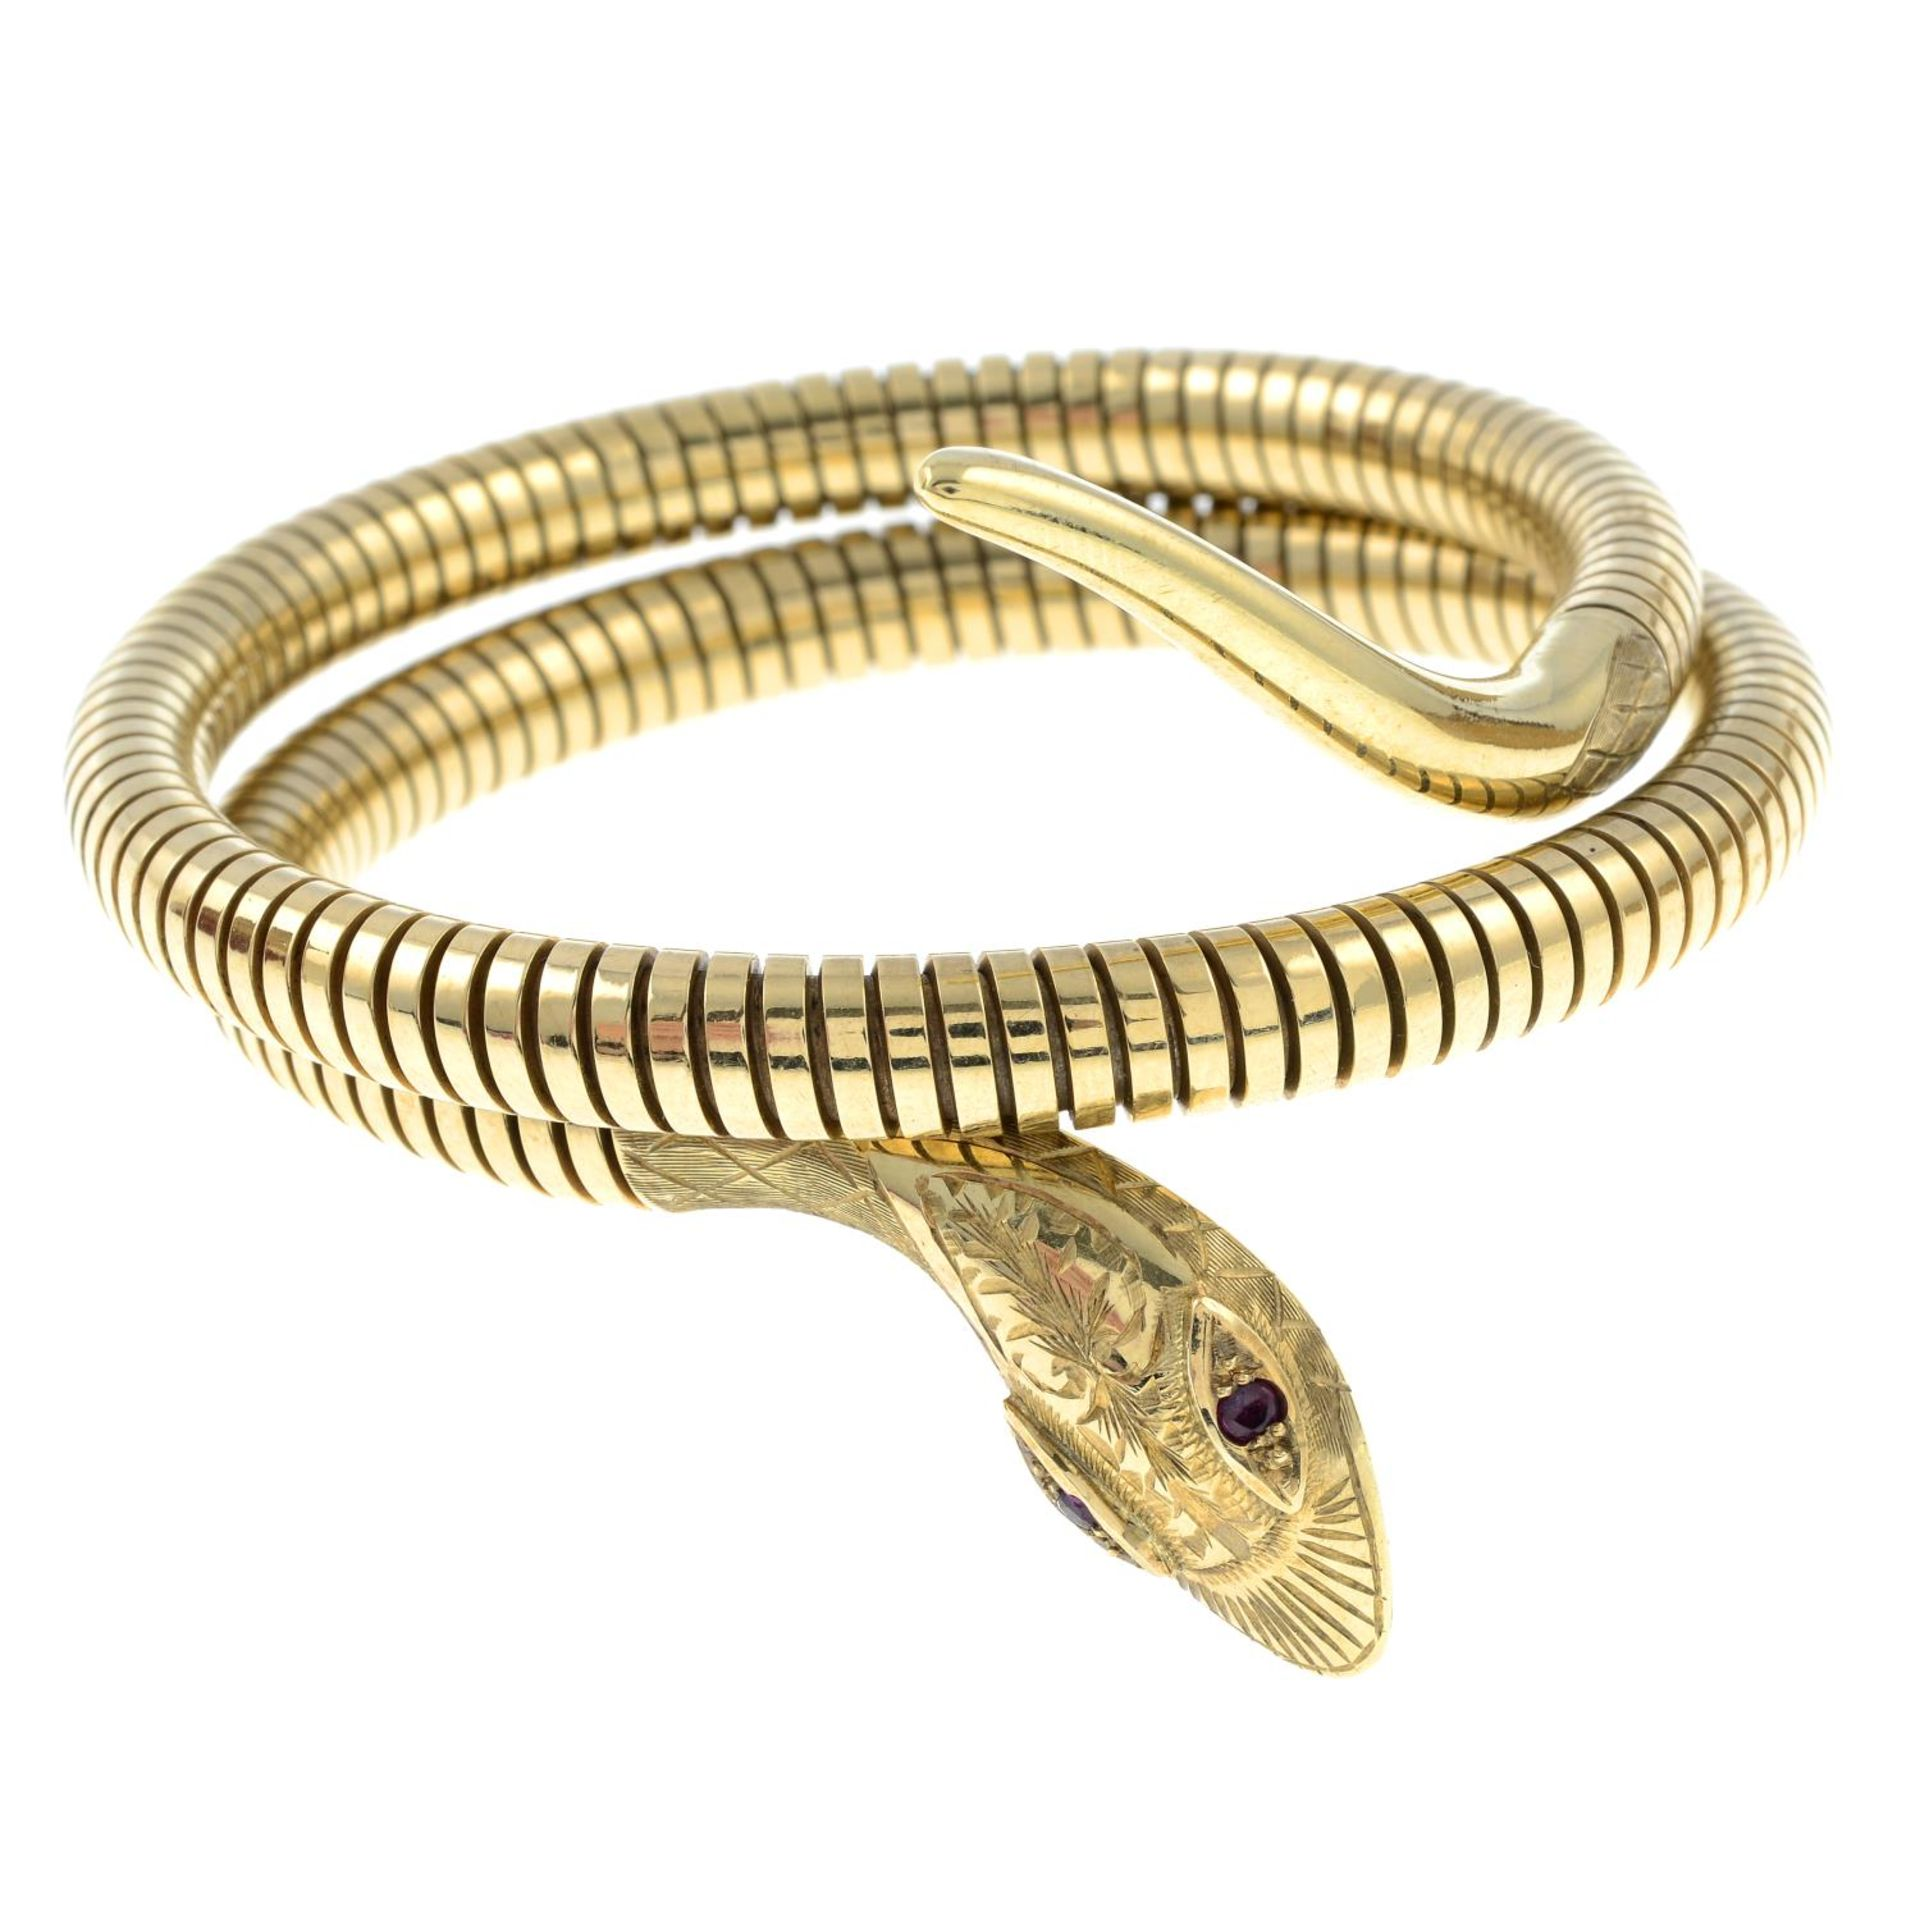 A 1950s 9ct gold coiled snake bangle,